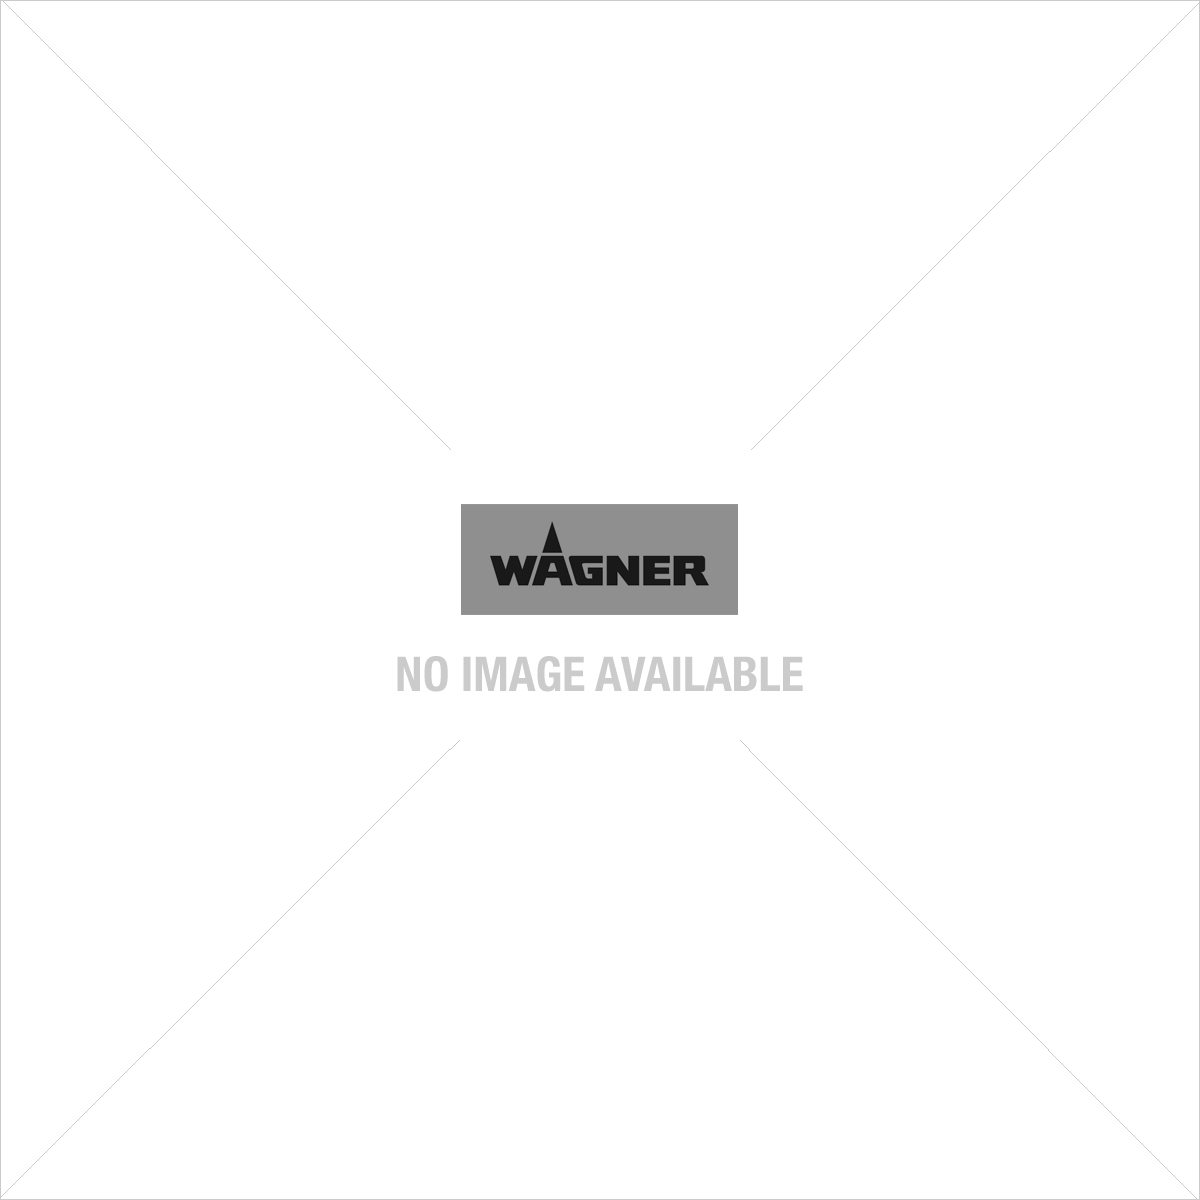 Wagner HeavyCoat 950 E SSP